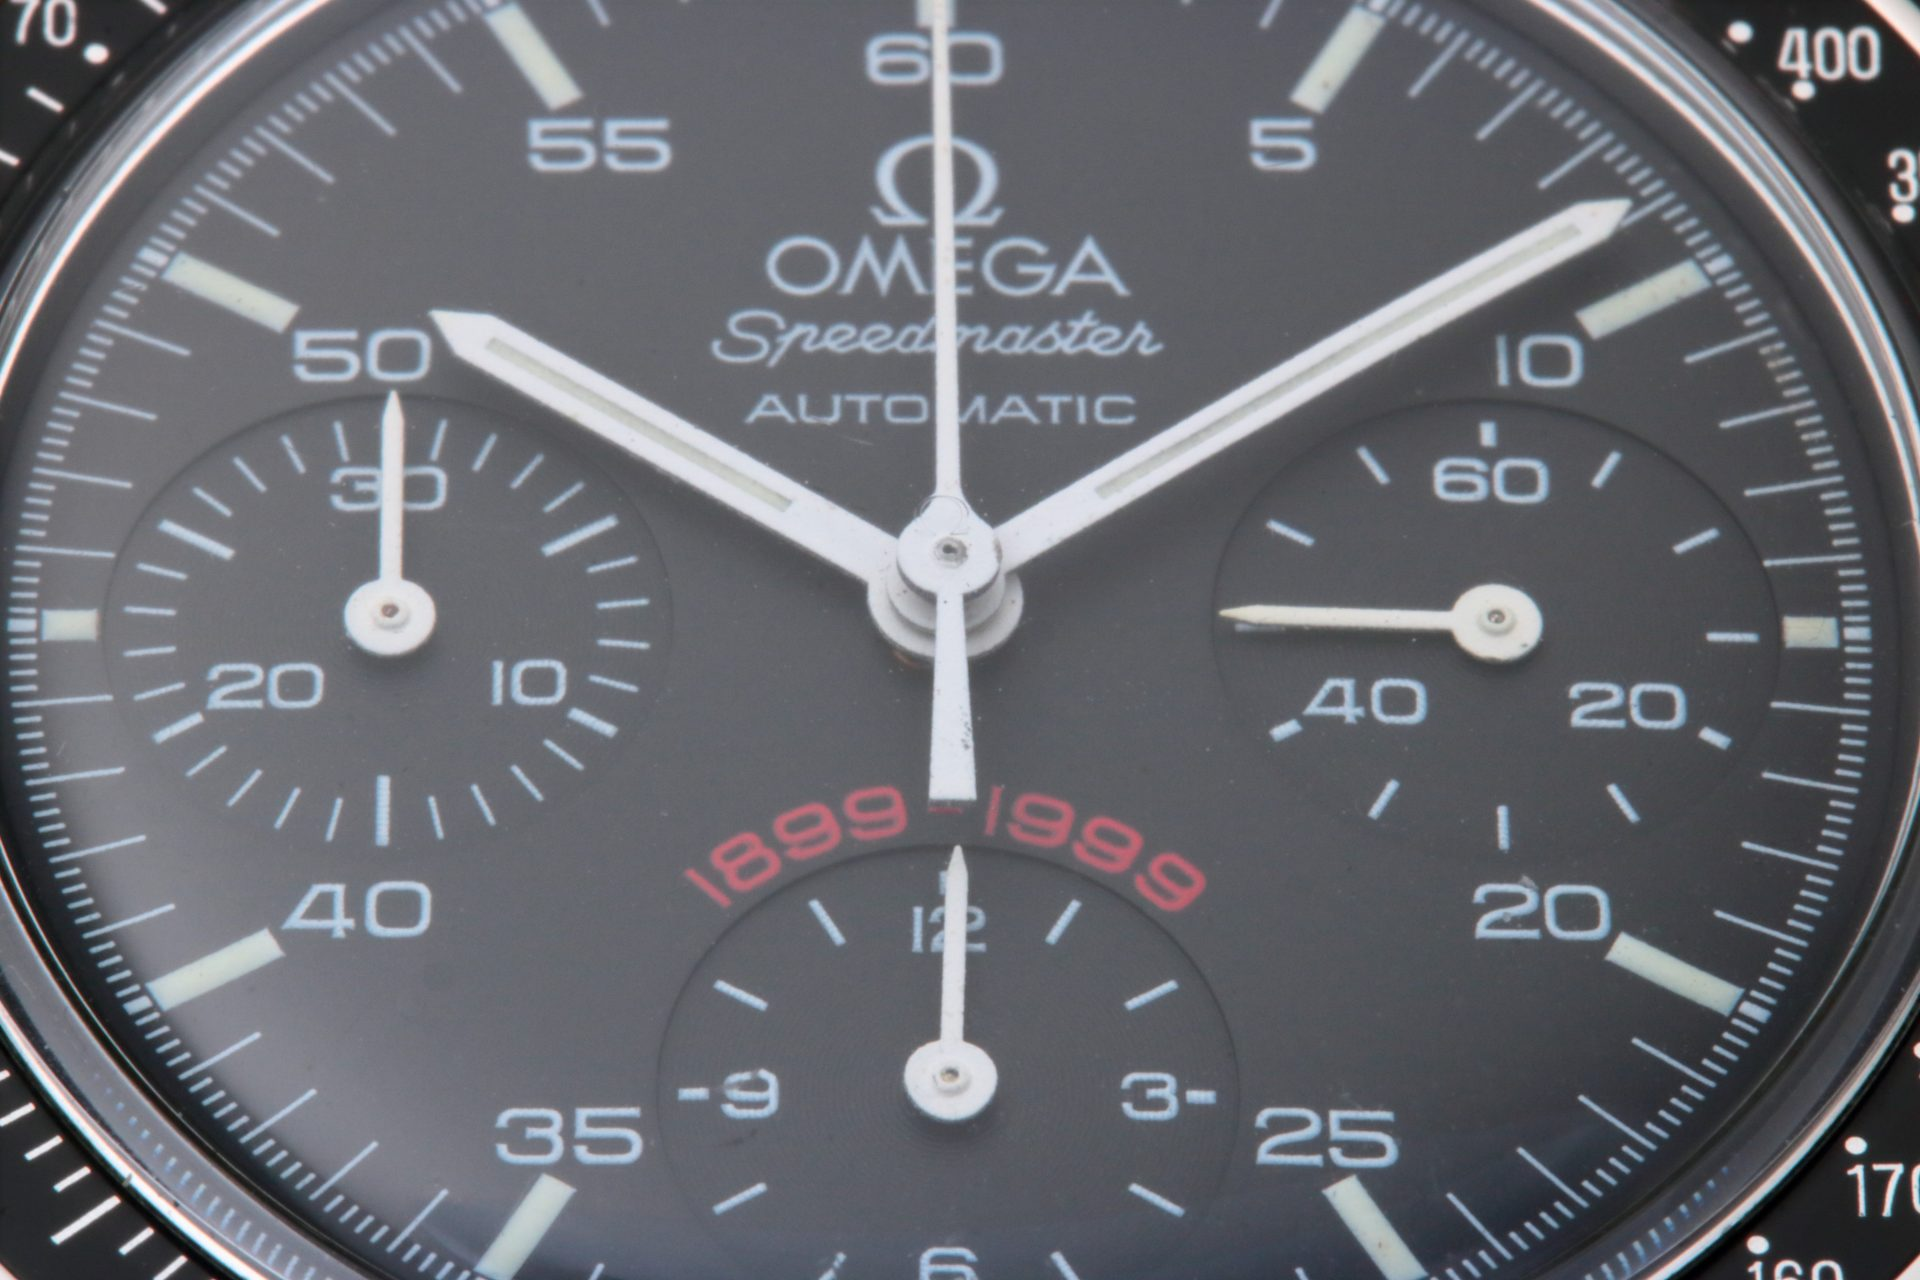 Omega Speedmaster A.C. Milan 1899 - 1999 dial close up of the 3810.51.41. Note the original Omega Hesalite crystal indicated by the Omega logo in the center of the crystal.